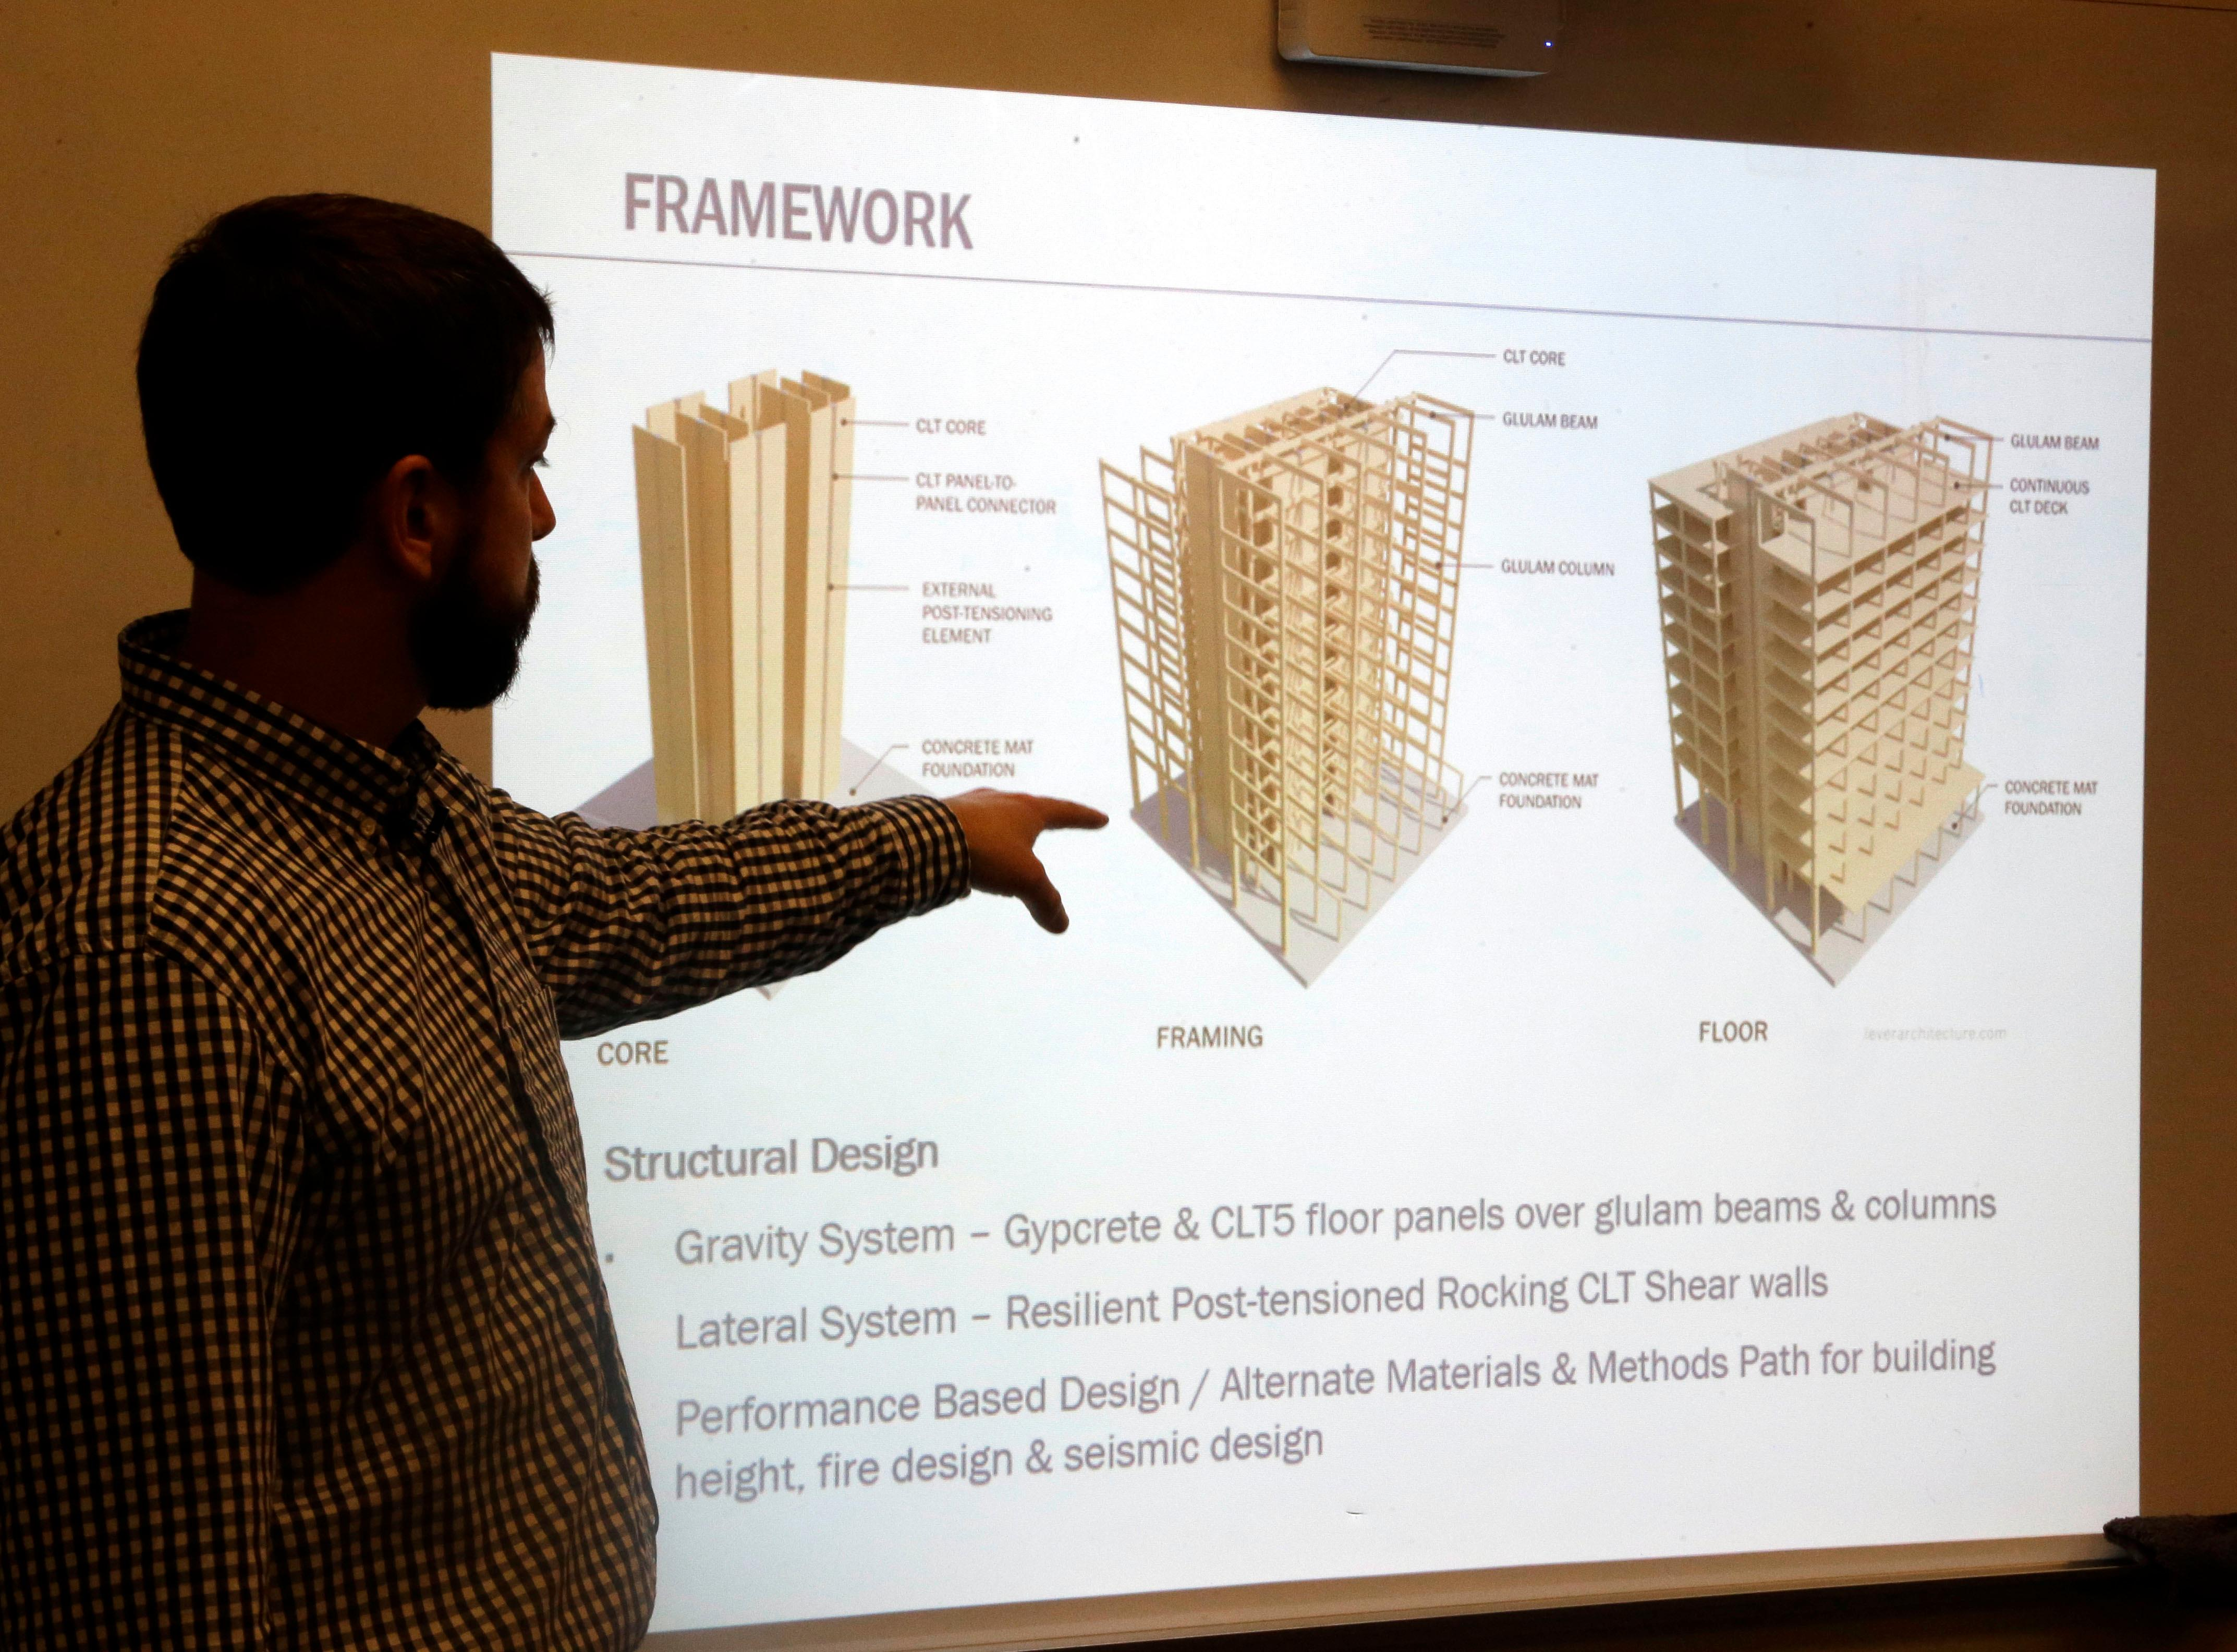 FILE--In this Nov. 15, 2016, file photo, structural engineer Eric McDonnell shows diagrams of skyscraper construction using cross-laminated timber, or CLT, at Portland State University in Portland, Ore. City officials in Portland have approved a construction permit for the first all-wood high-rise building in the nation. The building uses the new technology called cross-laminated timber that tests have shown can withstand the worst earthquakes. Developers worked with scientists at Portland State University and Oregon State University to prove through testing that the materials meet all building and fire safety codes. (AP Photo/Don Ryan, file)